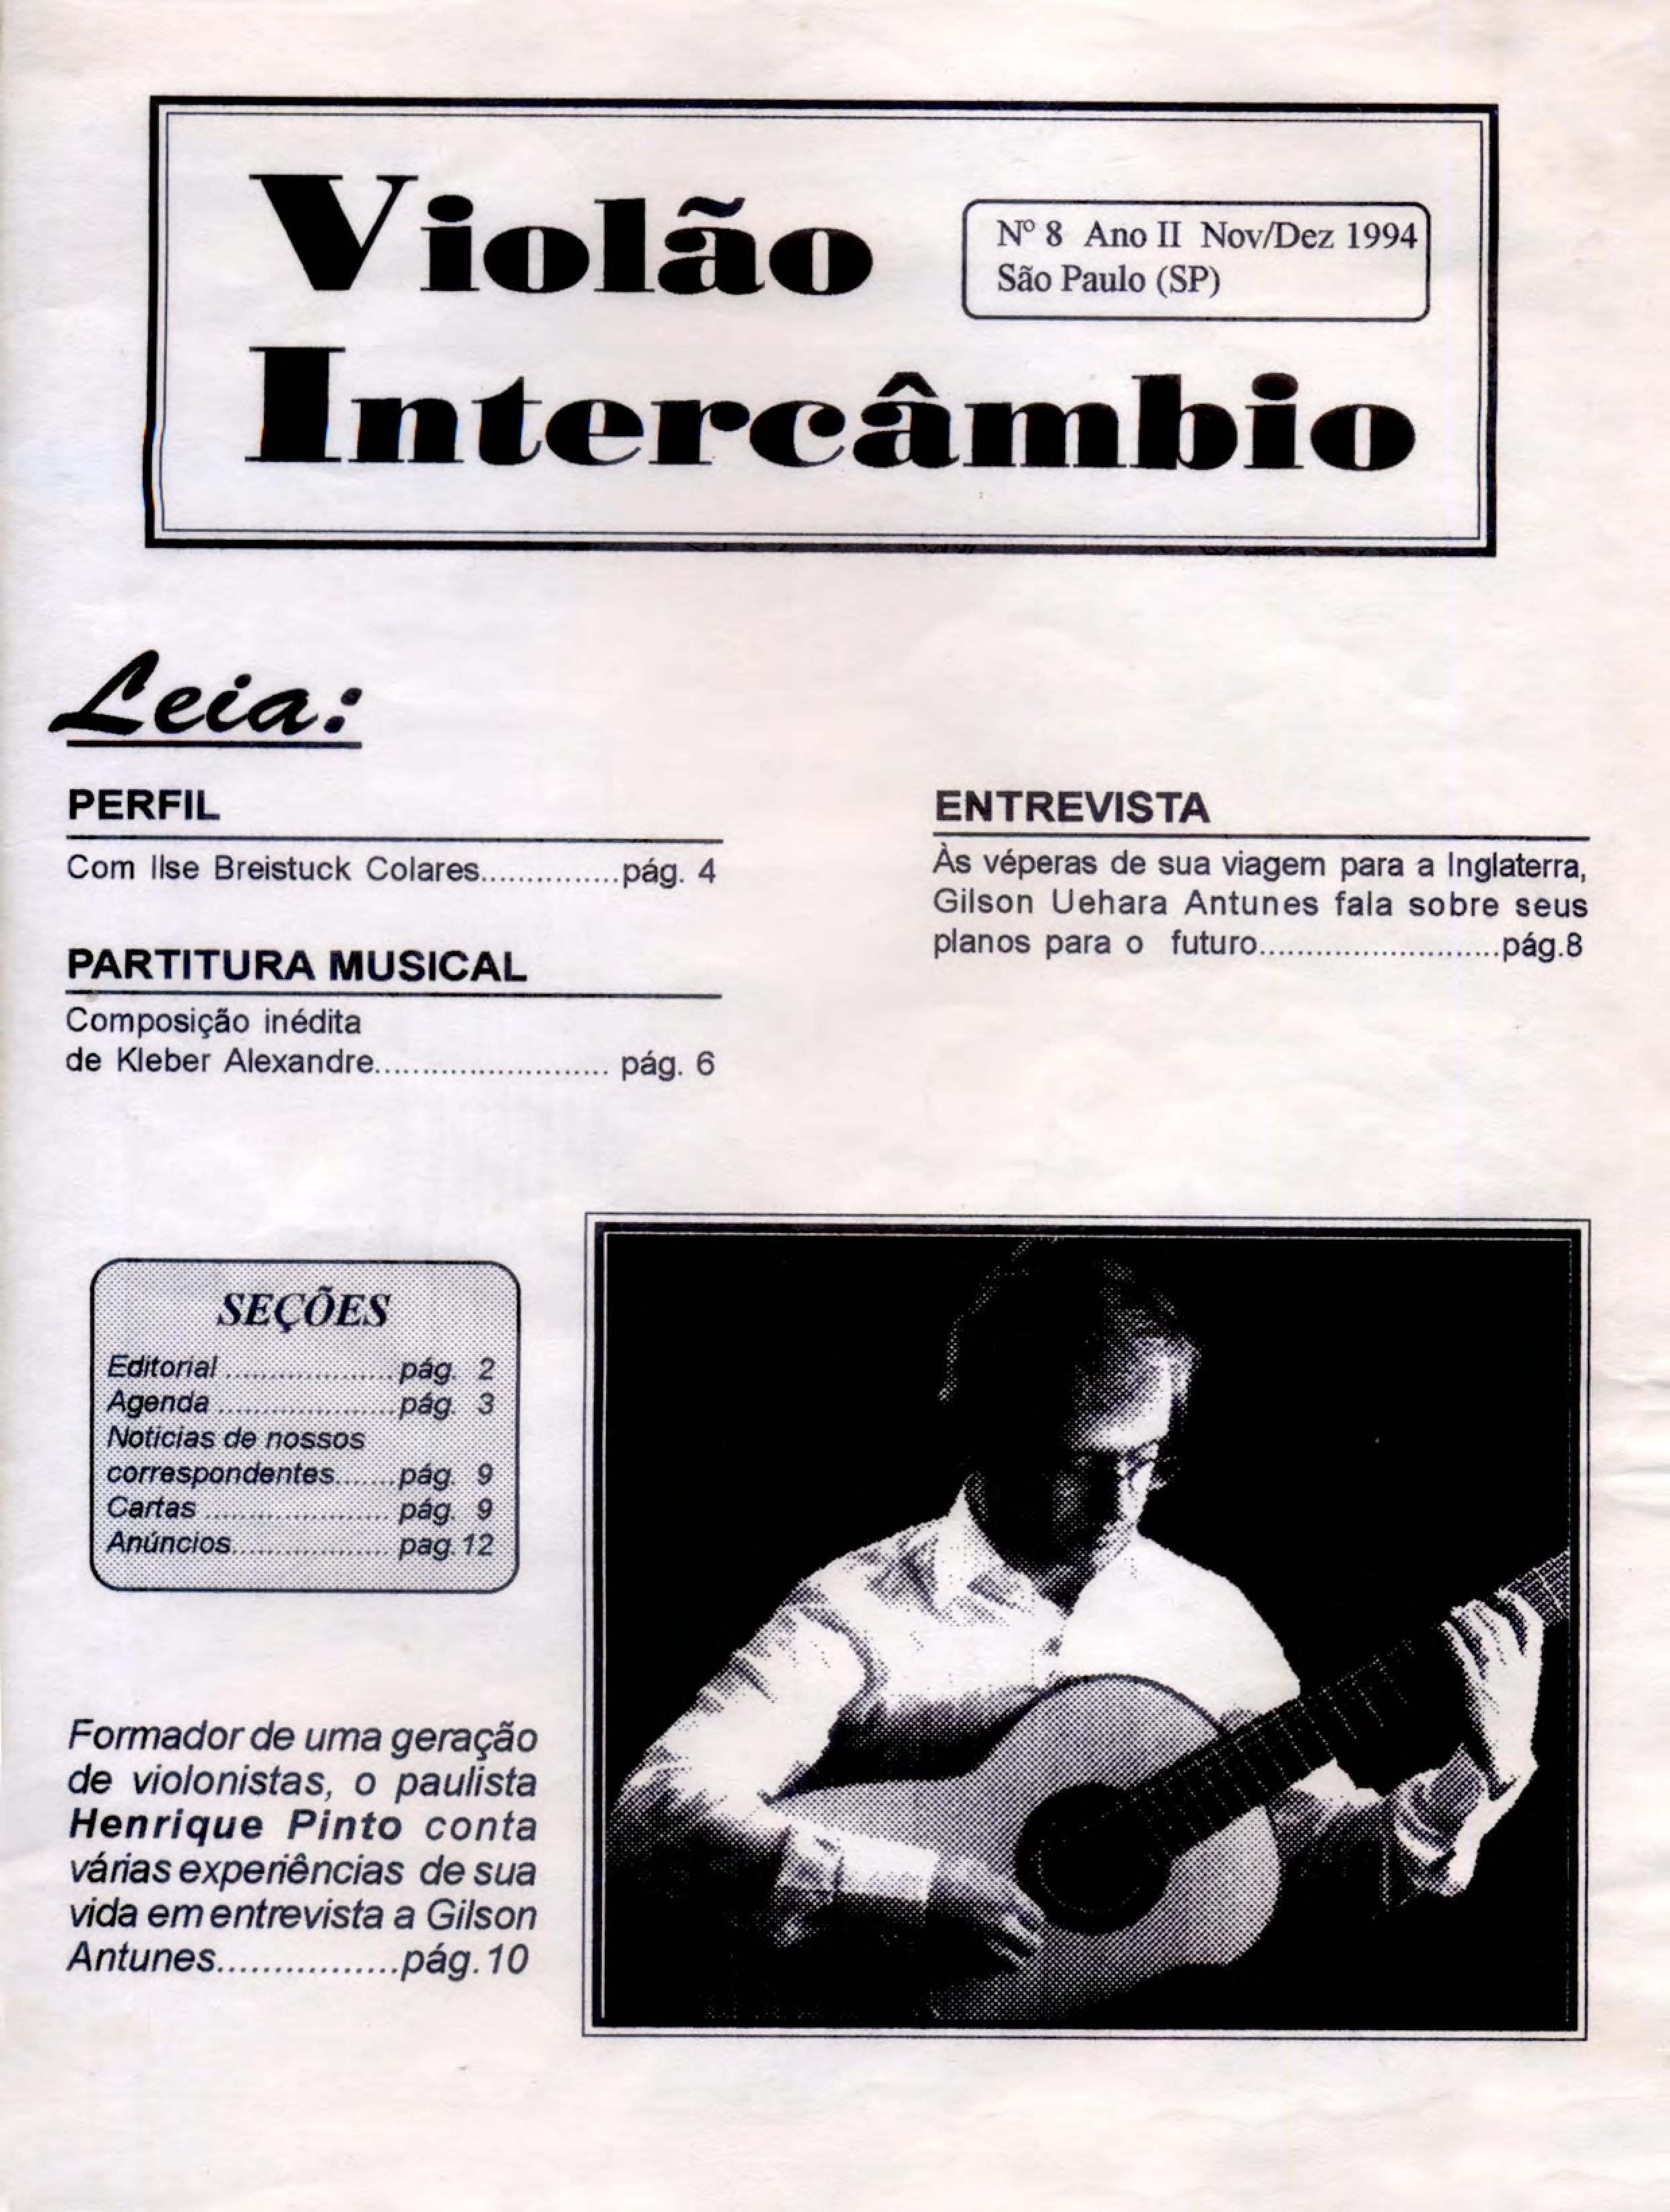 Revista Violão Intercâmbio - n 8 ano II - nov/dez 1994